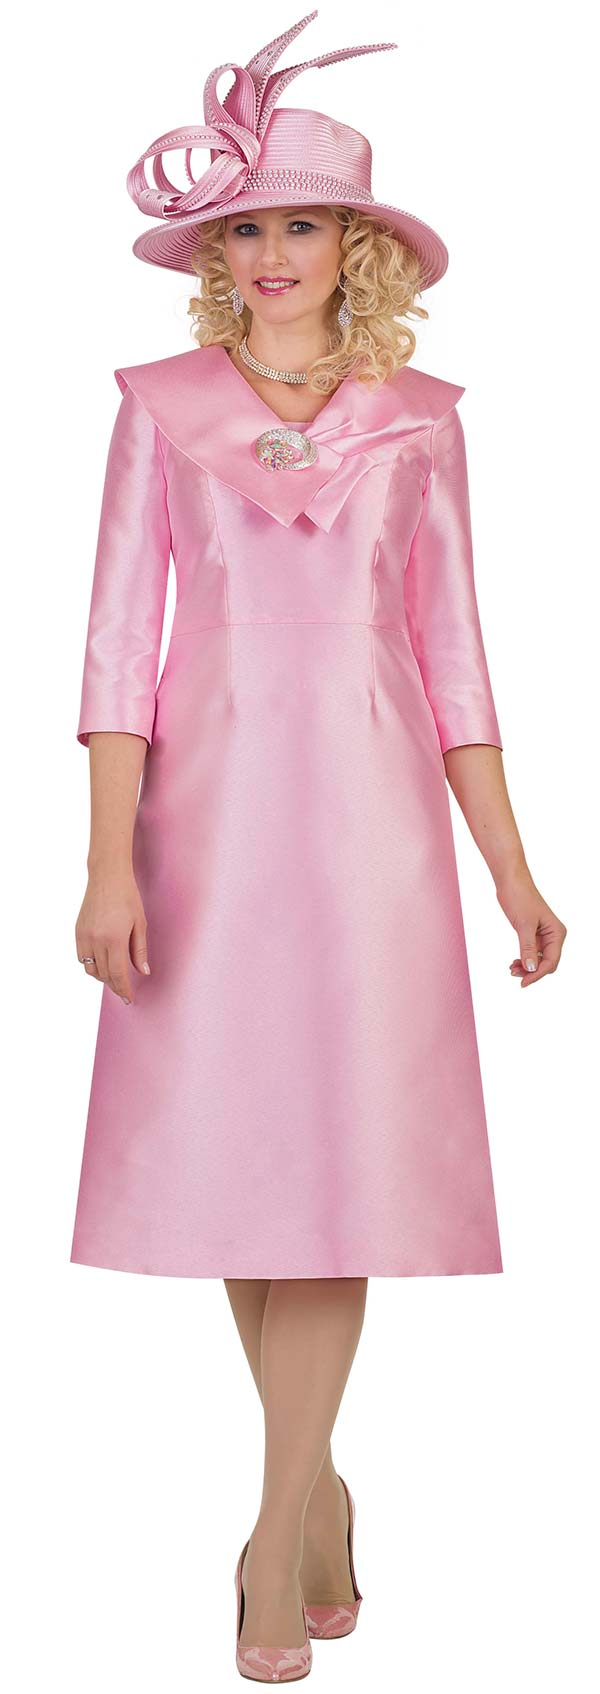 Lily and Taylor 4552-Pink - Basic Church Dress WIth Wide Over Shoulder Collar